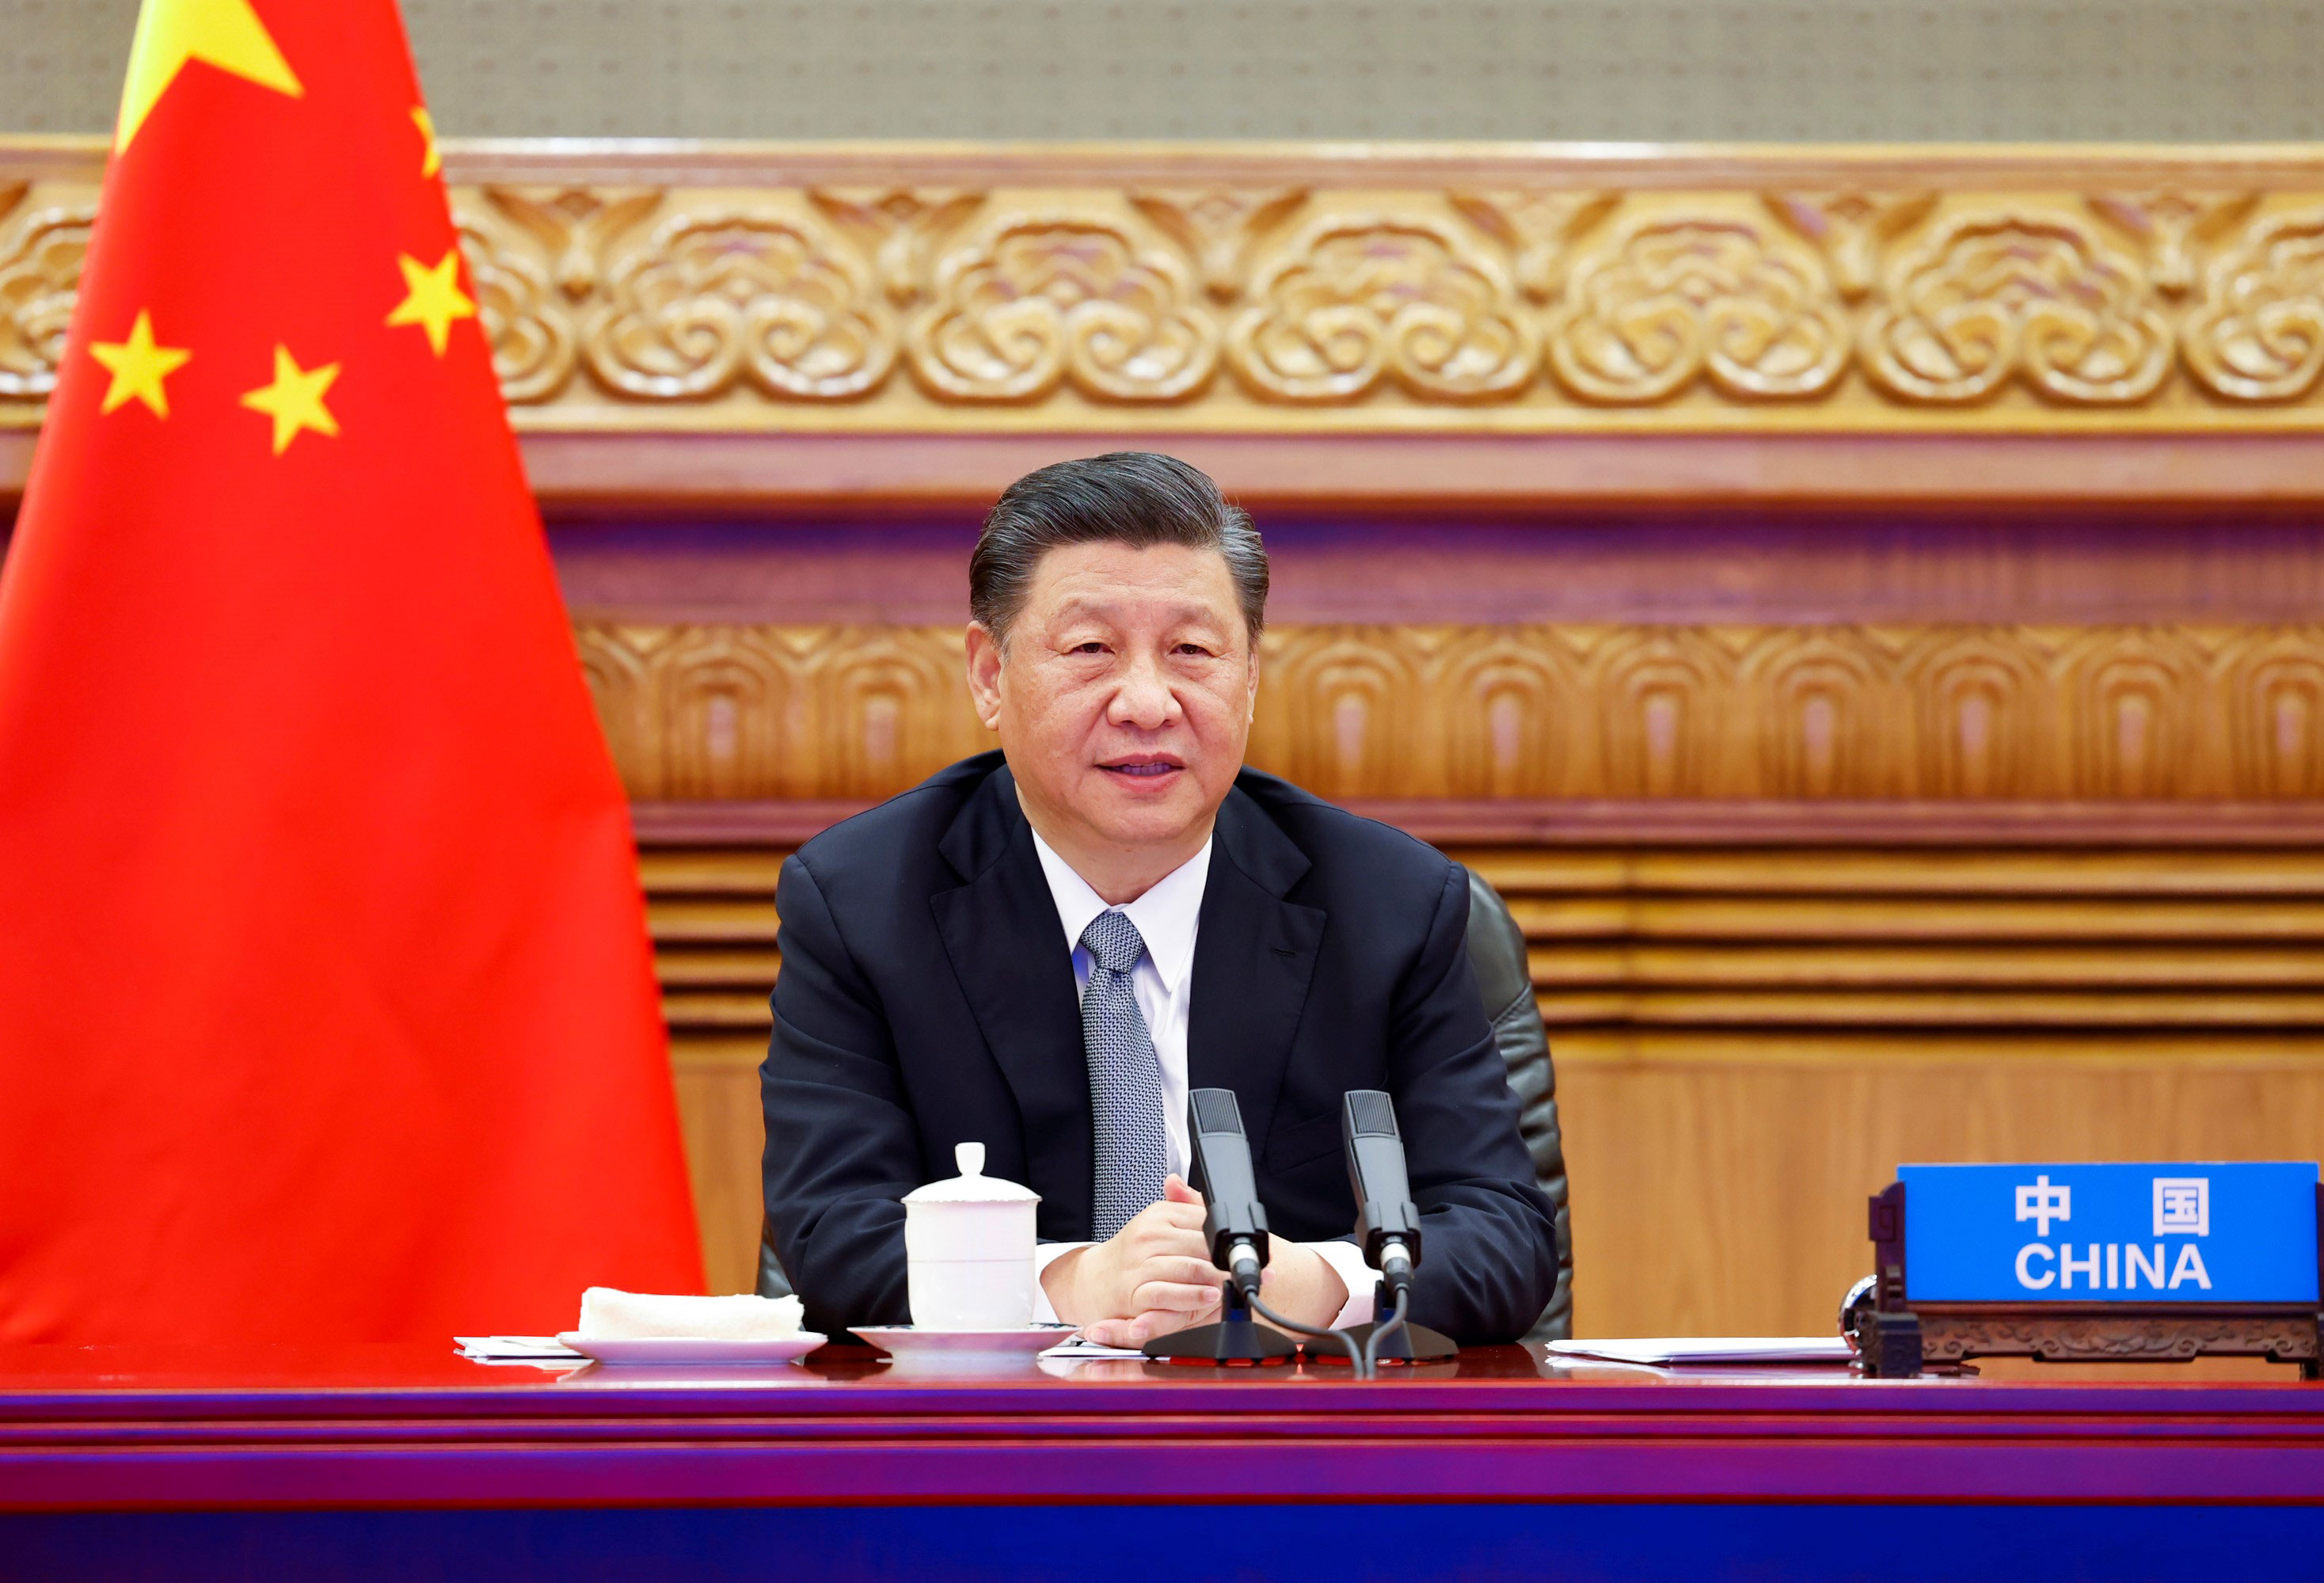 Chinese President Xi Jinping attends the Leaders Summit on Climate via video in Beijing on April 22.